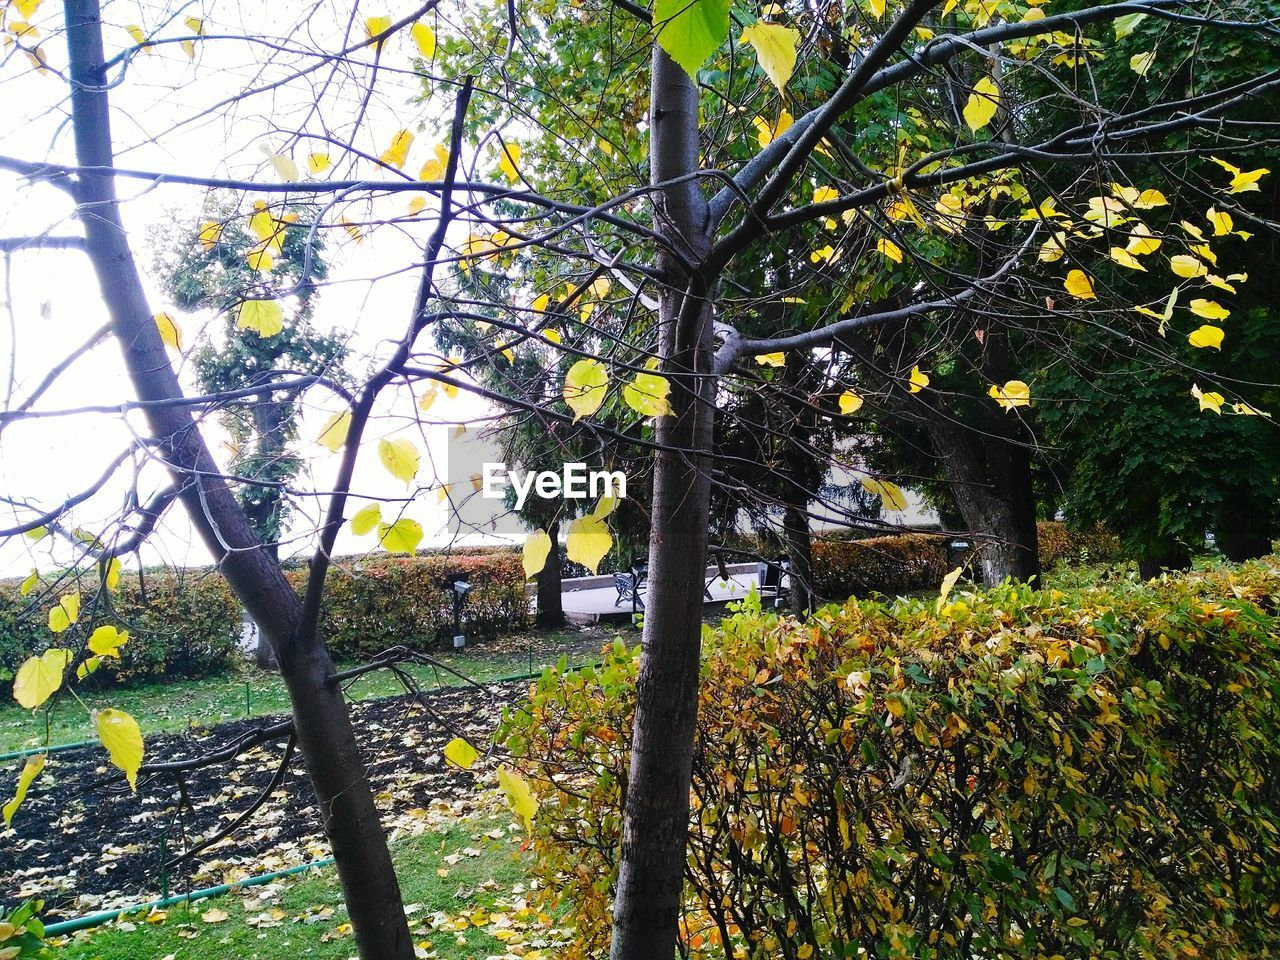 tree, growth, branch, beauty in nature, nature, day, outdoors, no people, tranquility, yellow, low angle view, leaf, scenics, tree trunk, flower, freshness